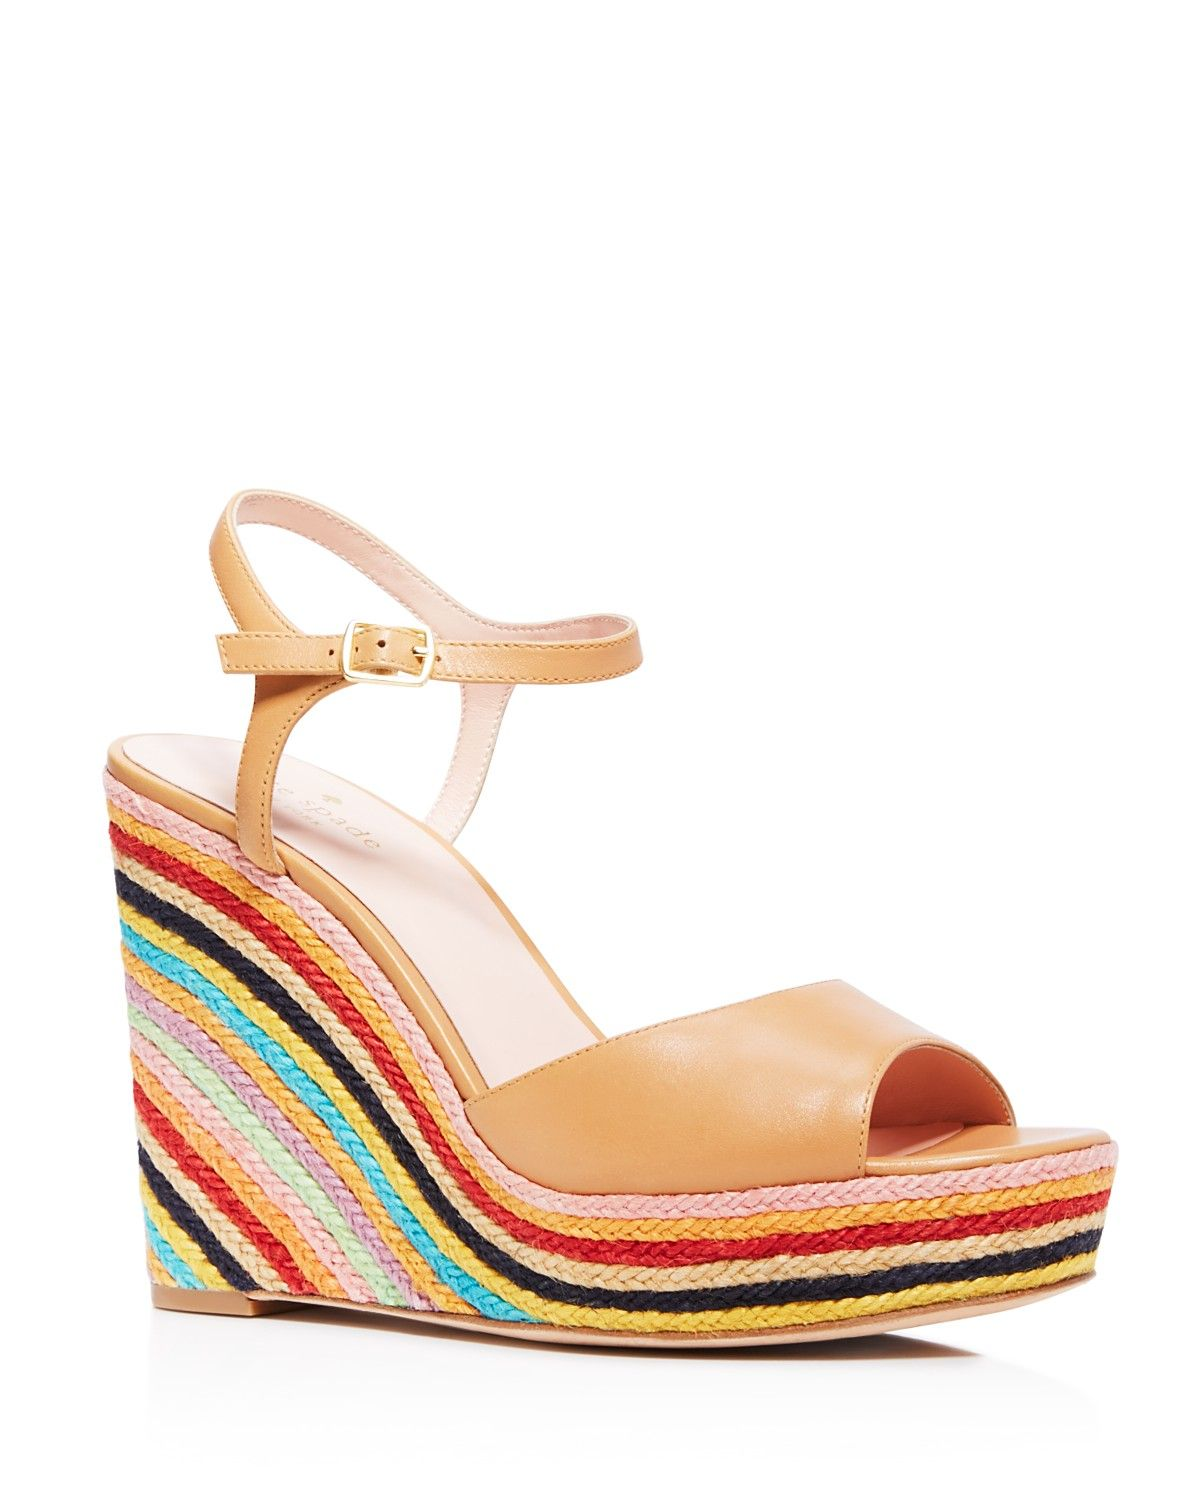 b8dd80de3 Walk on sunshine with kate spade new york's Dallie rainbow-striped jute wedge  sandals in a so-now '70s silhouette designed exclusively for Bloomingdale's.